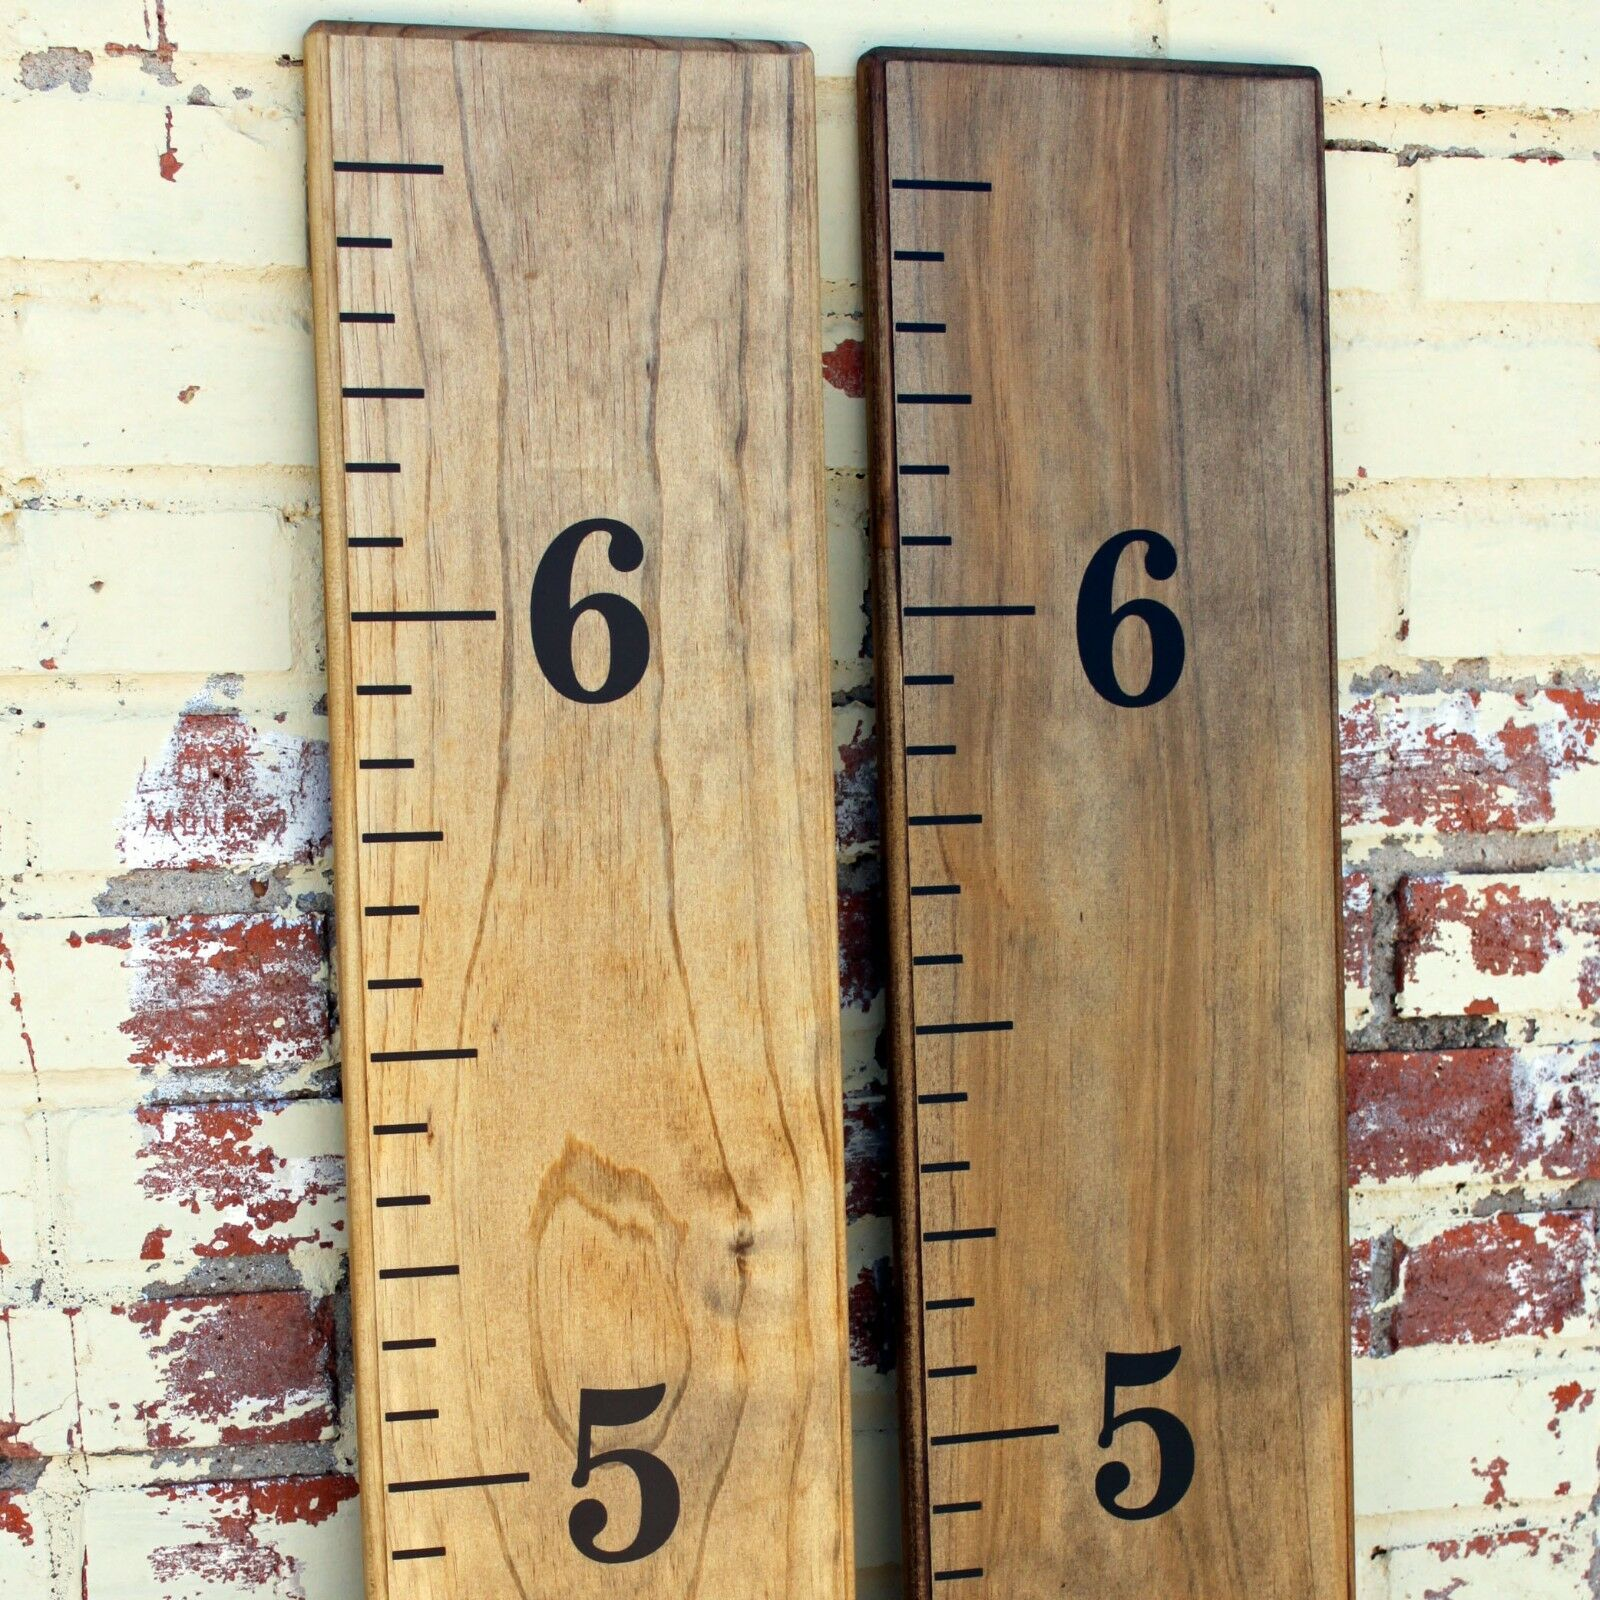 Diy vinyl growth chart ruler decal kit traditional style large picture 1 of 5 nvjuhfo Gallery